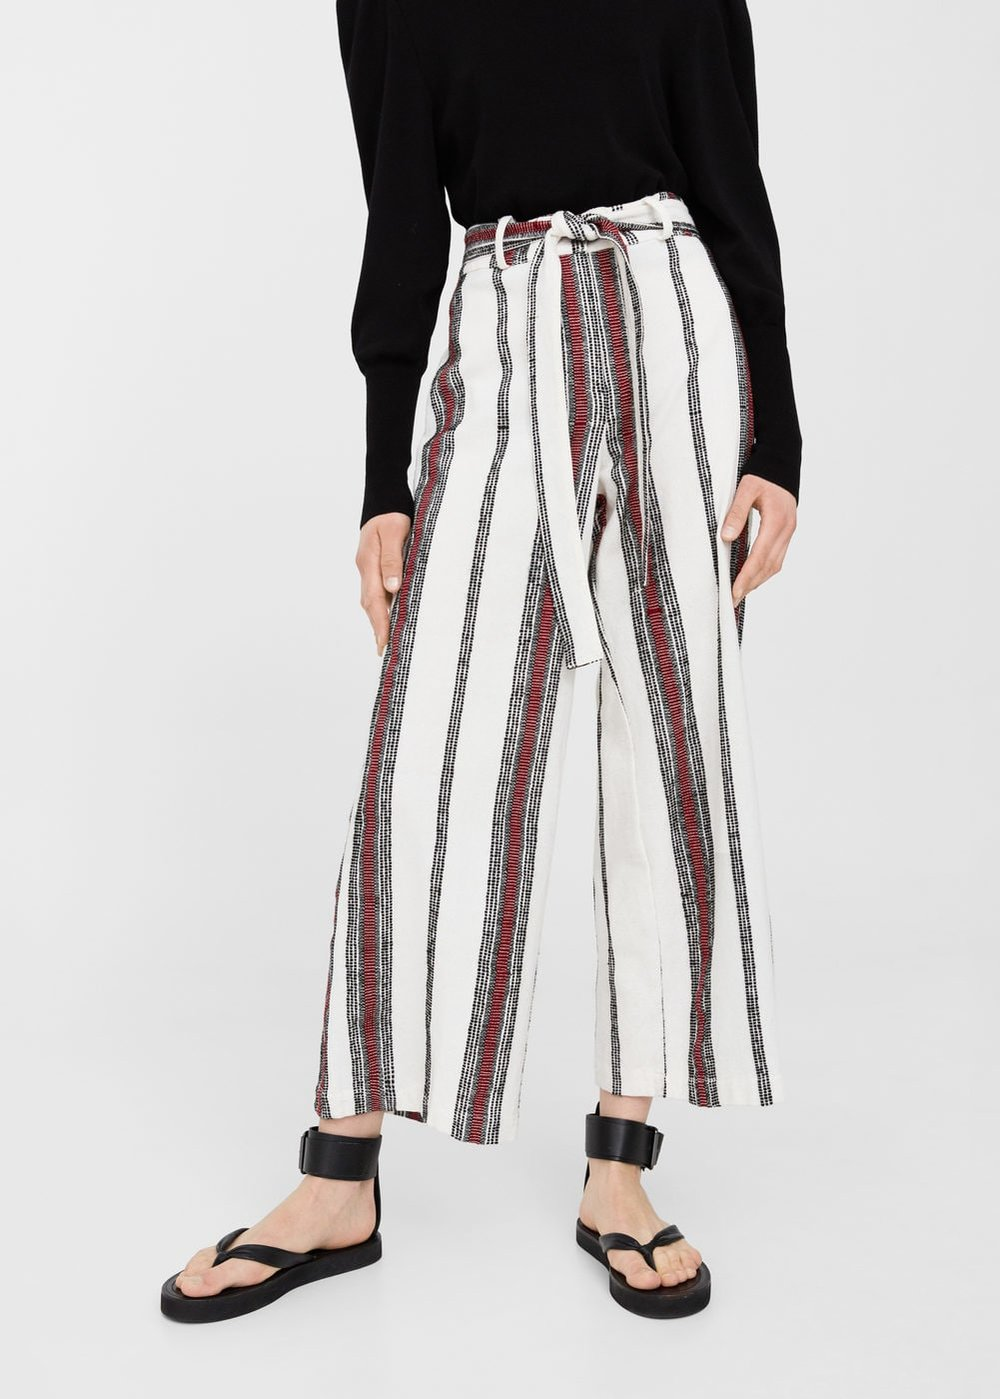 Striped cotton trousers, £29.99